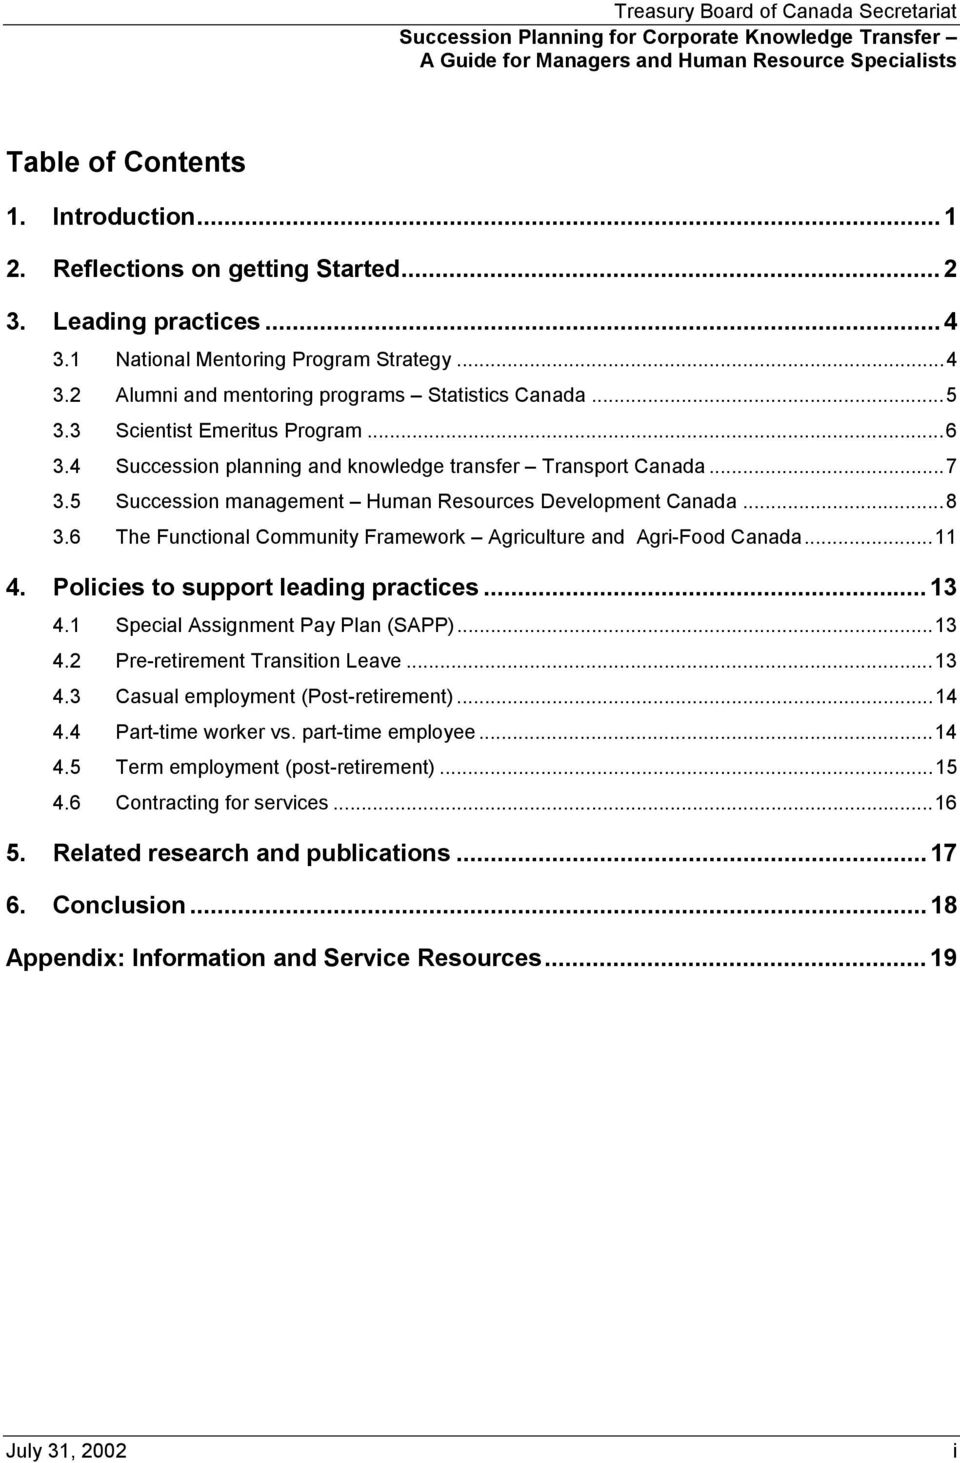 6 The Functional Community Framework Agriculture and Agri-Food Canada...11 4. Policies to support leading practices...13 4.1 Special Assignment Pay Plan (SAPP)...13 4.2 Pre-retirement Transition Leave.